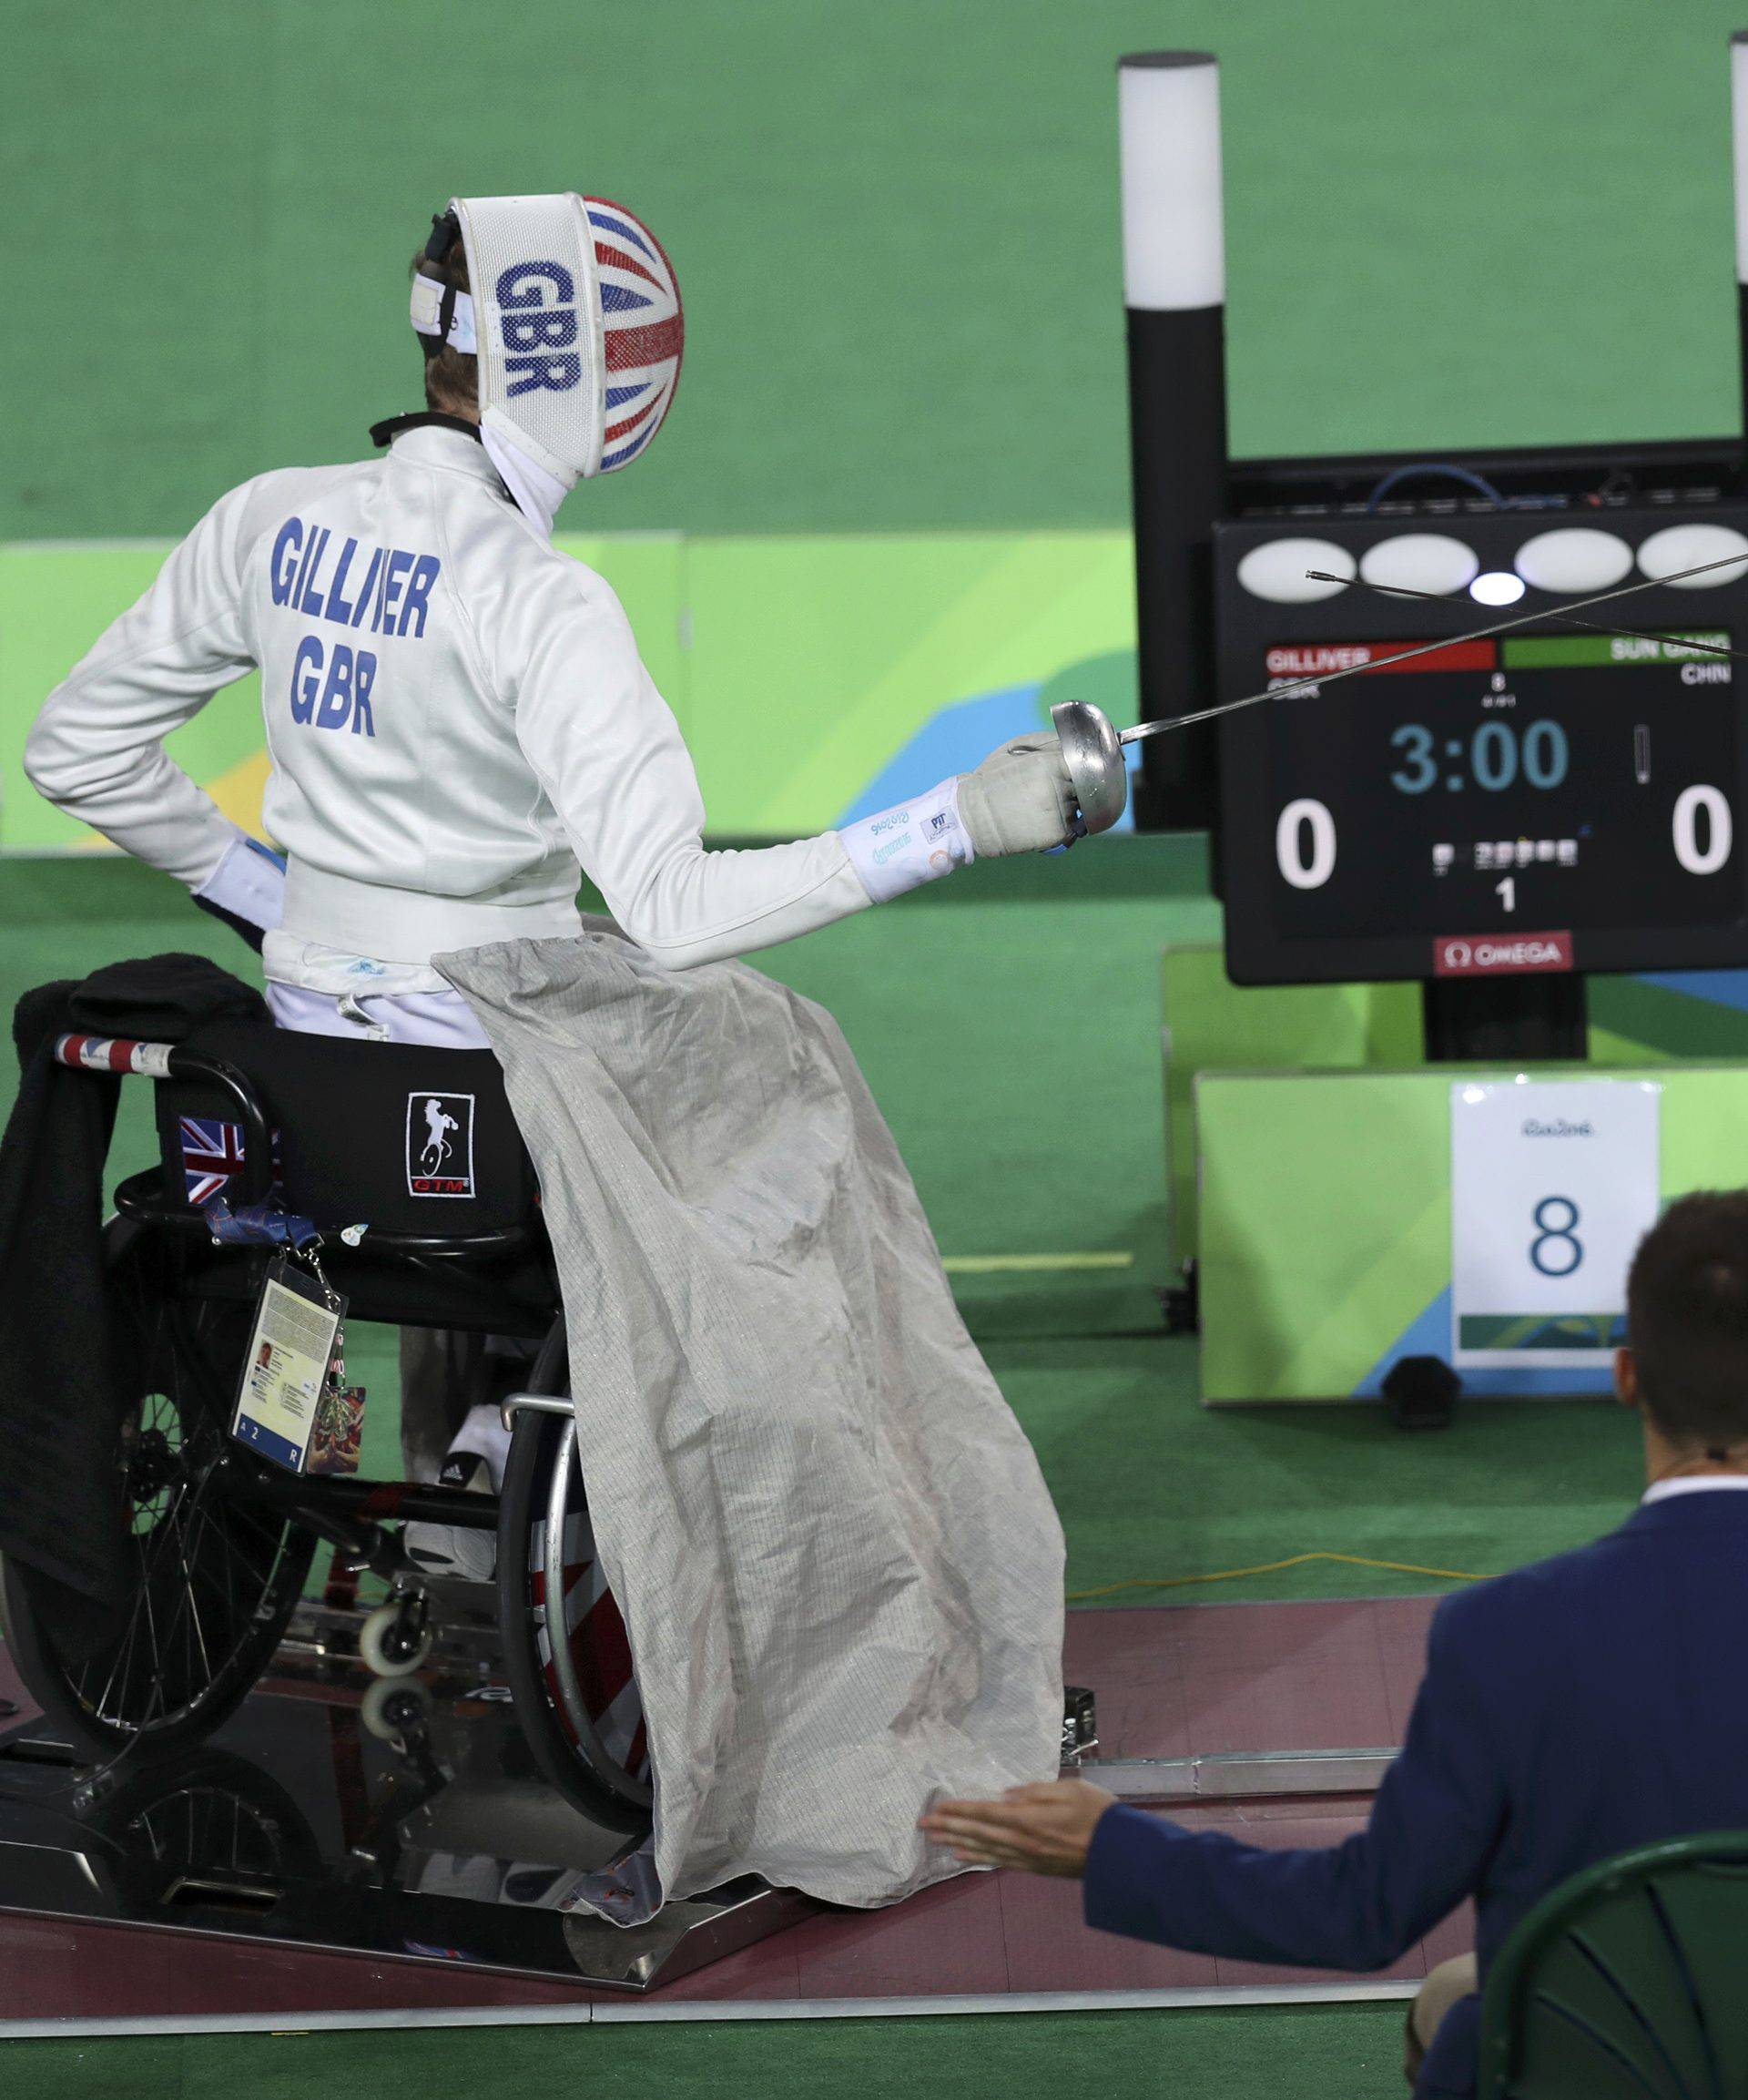 Wheelchair Fencing - Final - Men's Individual Epee Category A Gold Medal Final